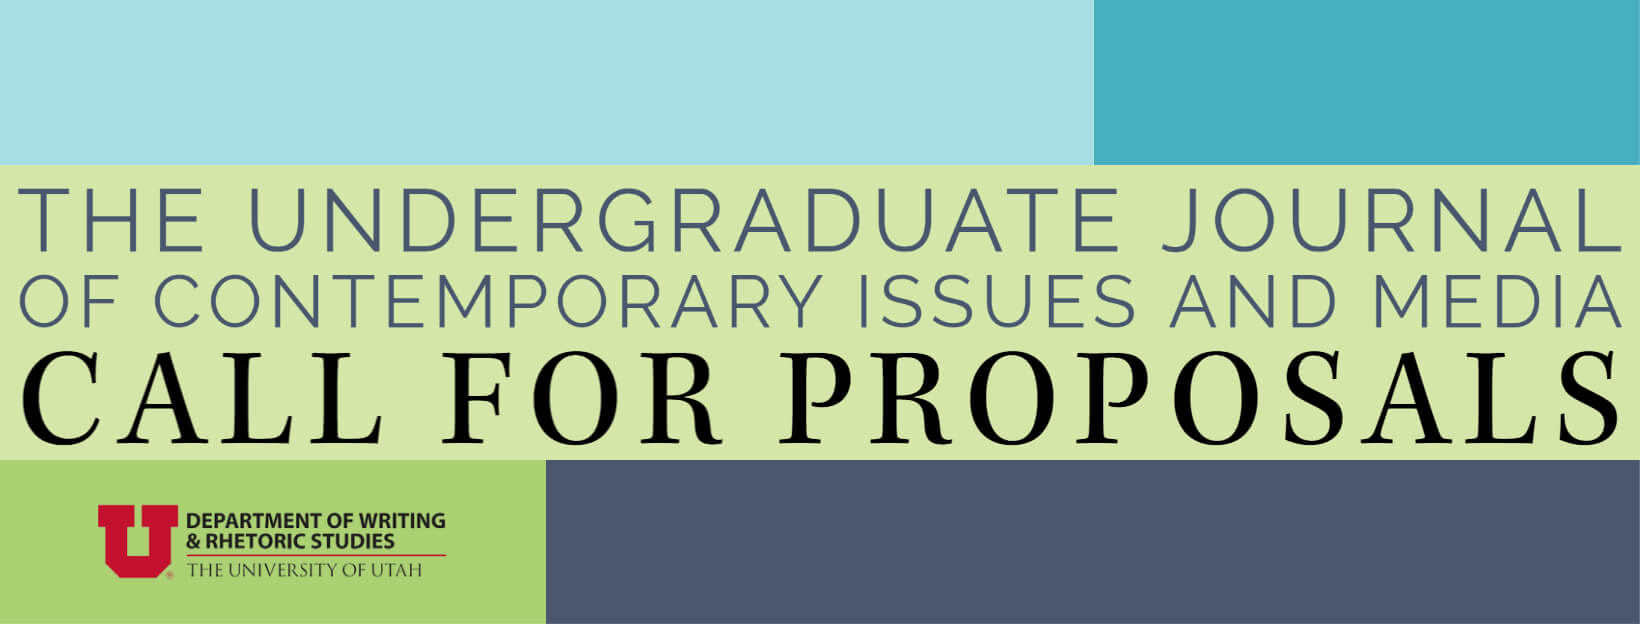 The Undergraduate Journal  of Contemporary Issues and Media: Call for Proposals